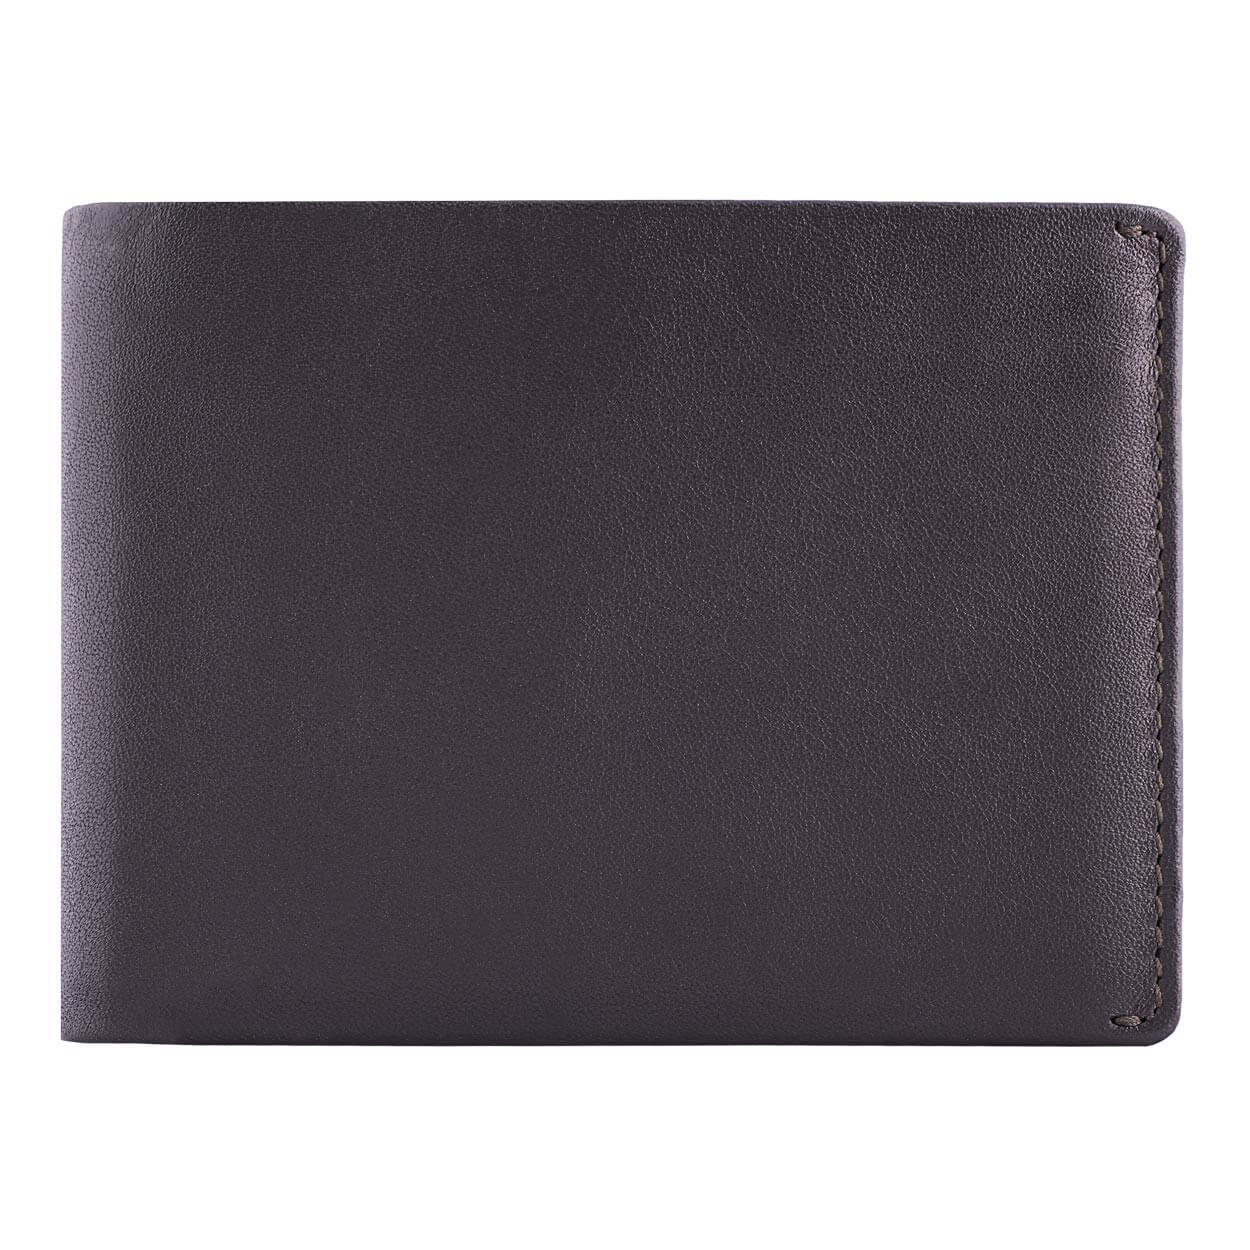 DiLoro Men's Leather Wallet Bifold 2 ID Windows RFID Protection -  Napa Brown Front View